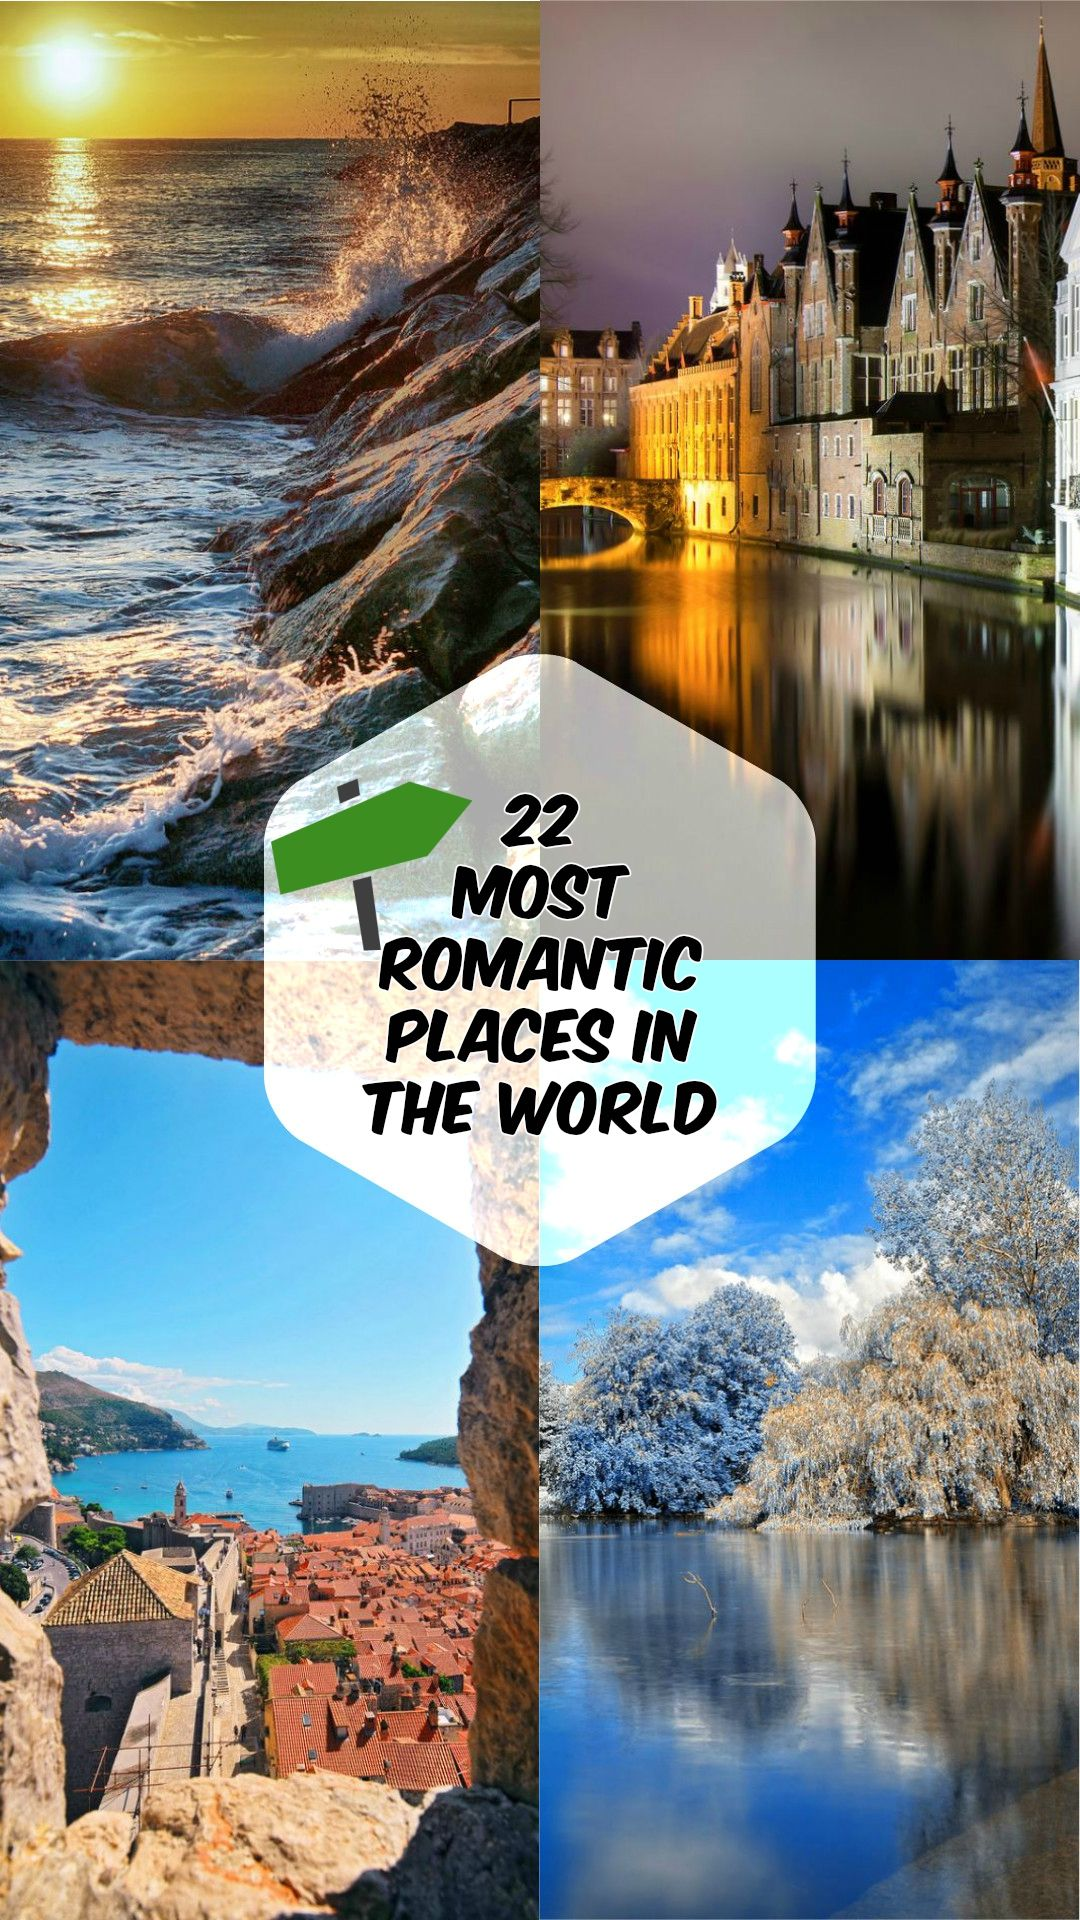 22 most romantic places in the world | place's to go! | pinterest